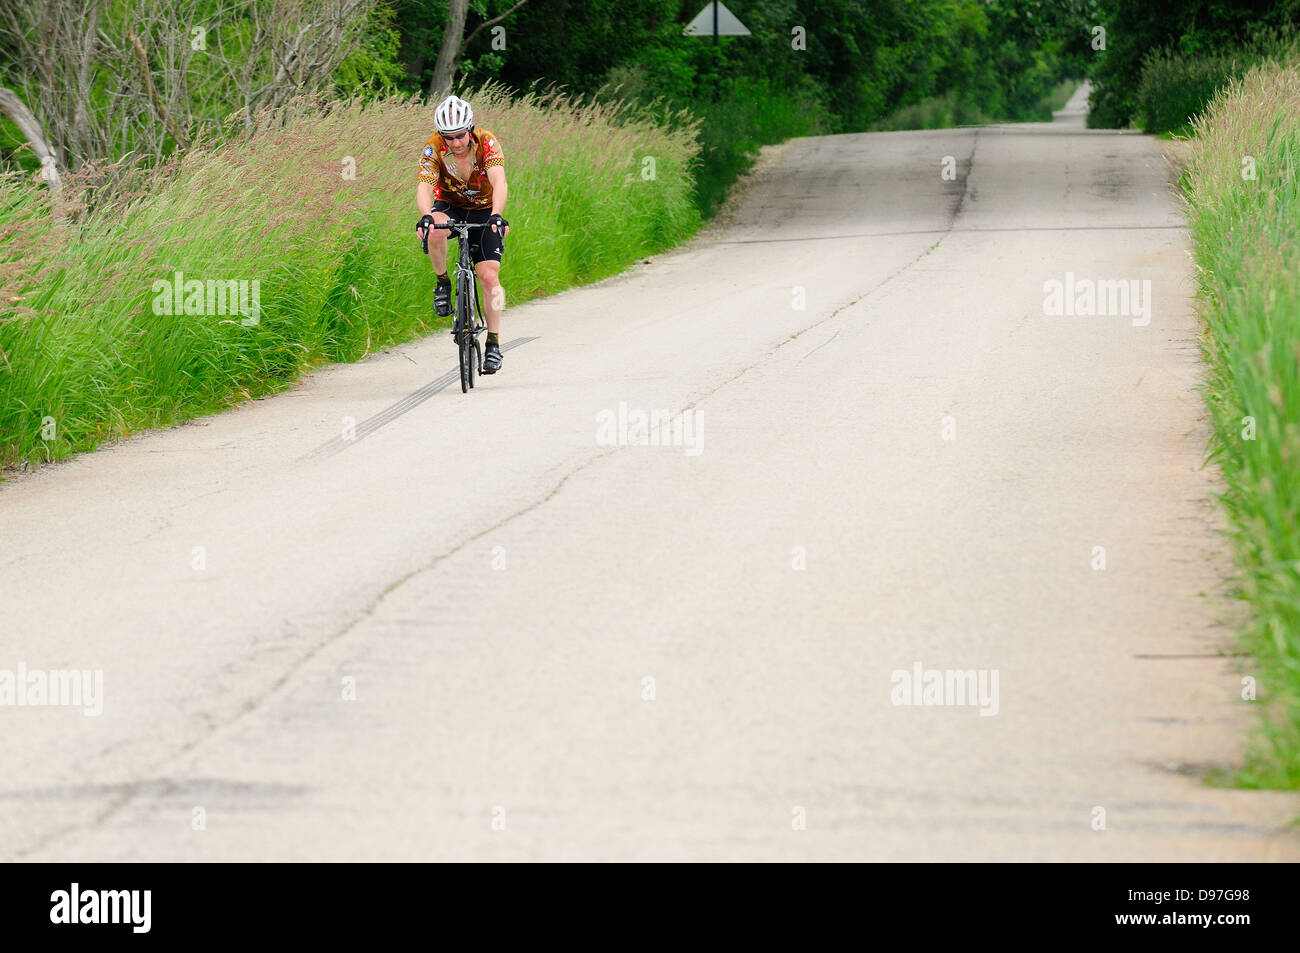 Lone bicyclist on country road. - Stock Image